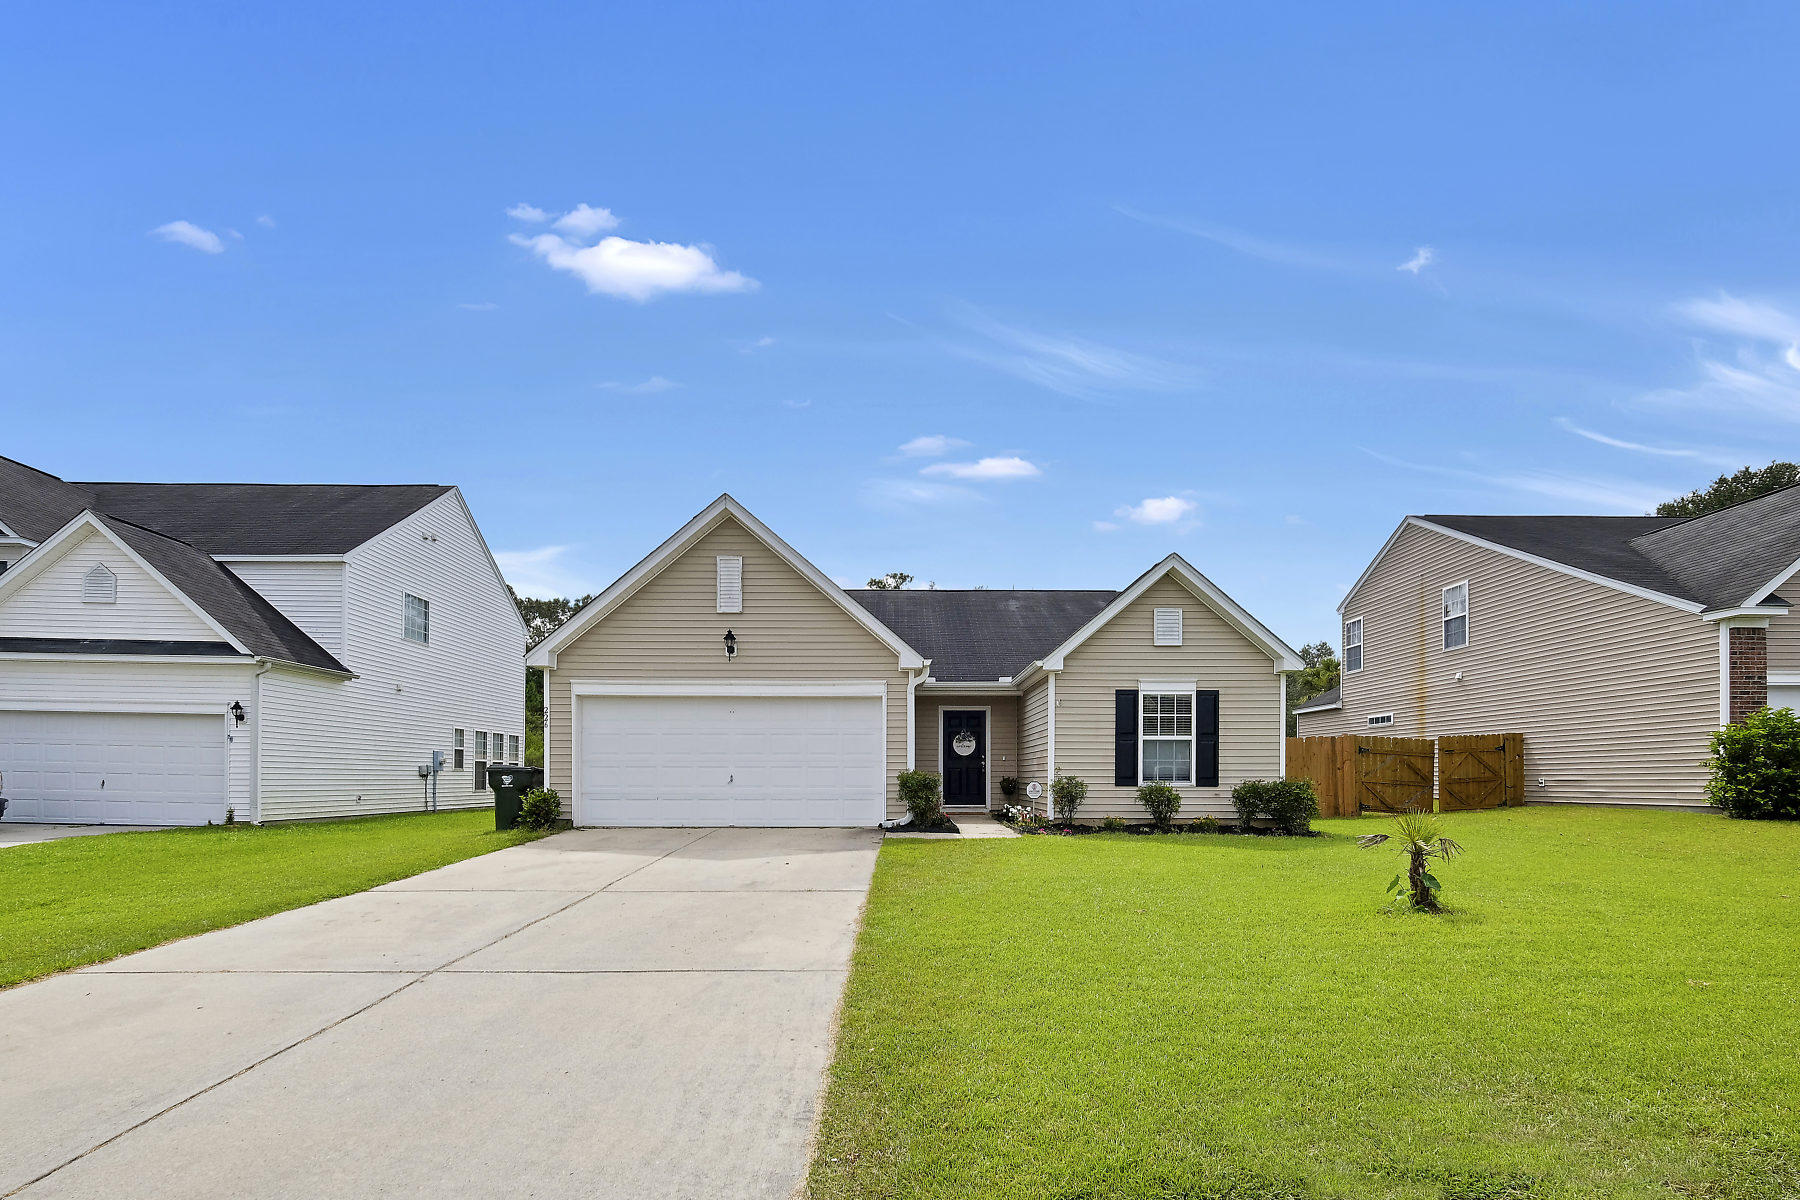 Oakley Pointe Homes For Sale - 226 Silk Oak, Moncks Corner, SC - 19